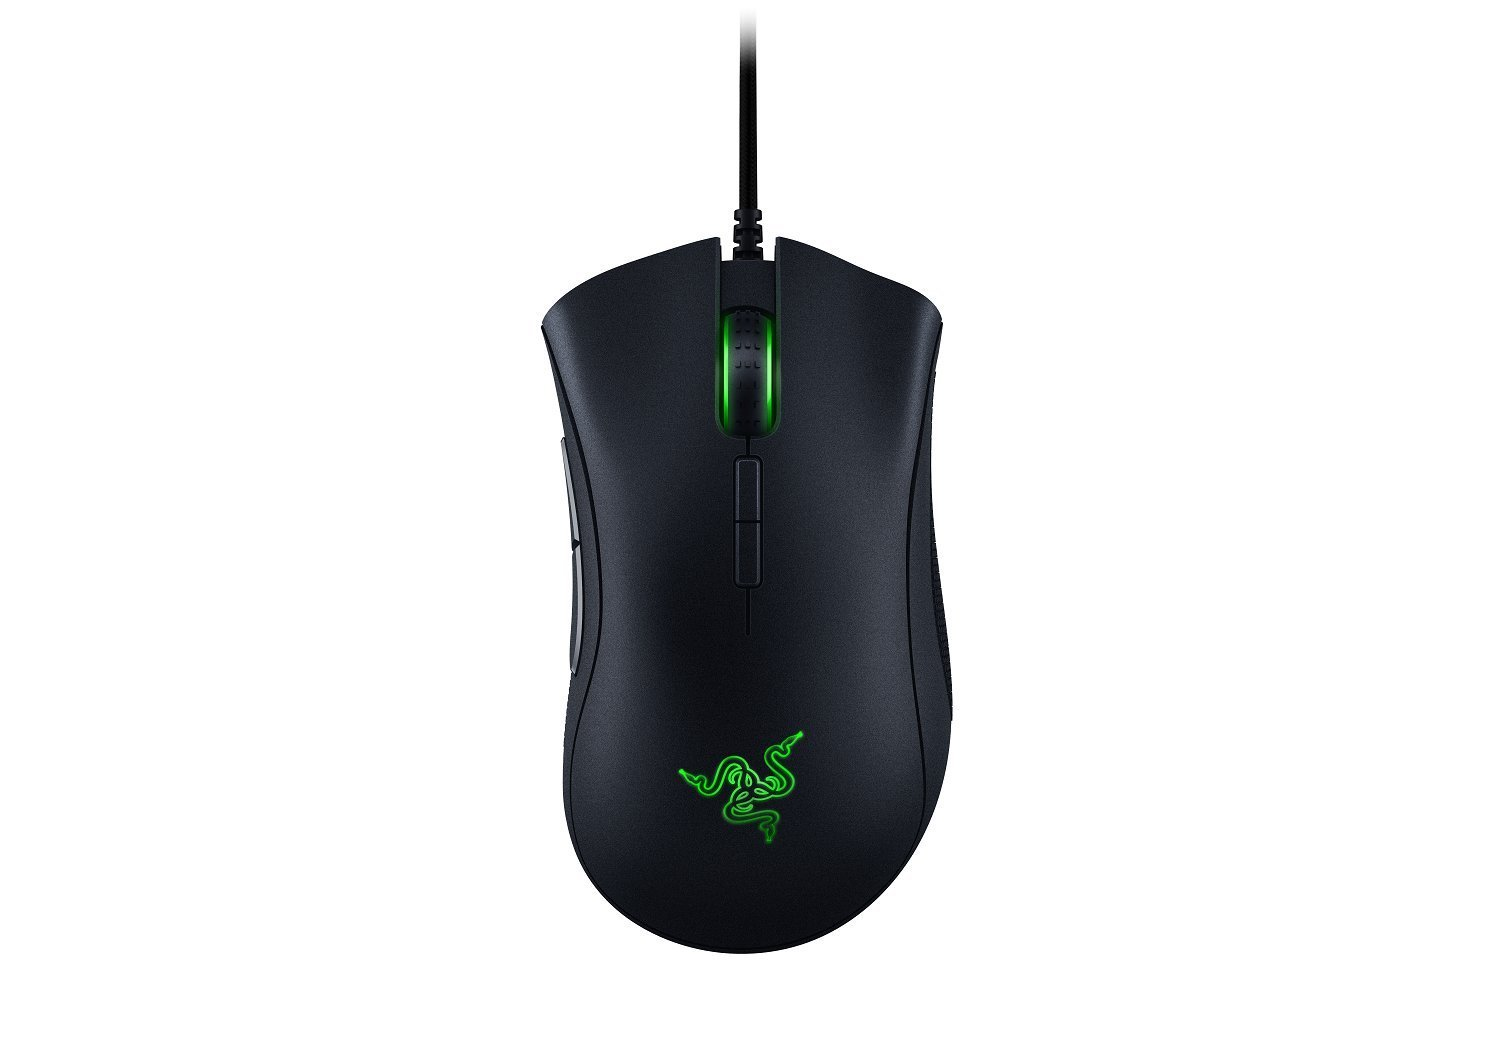 Razer Deathadder Elite at Amazon for £47.99